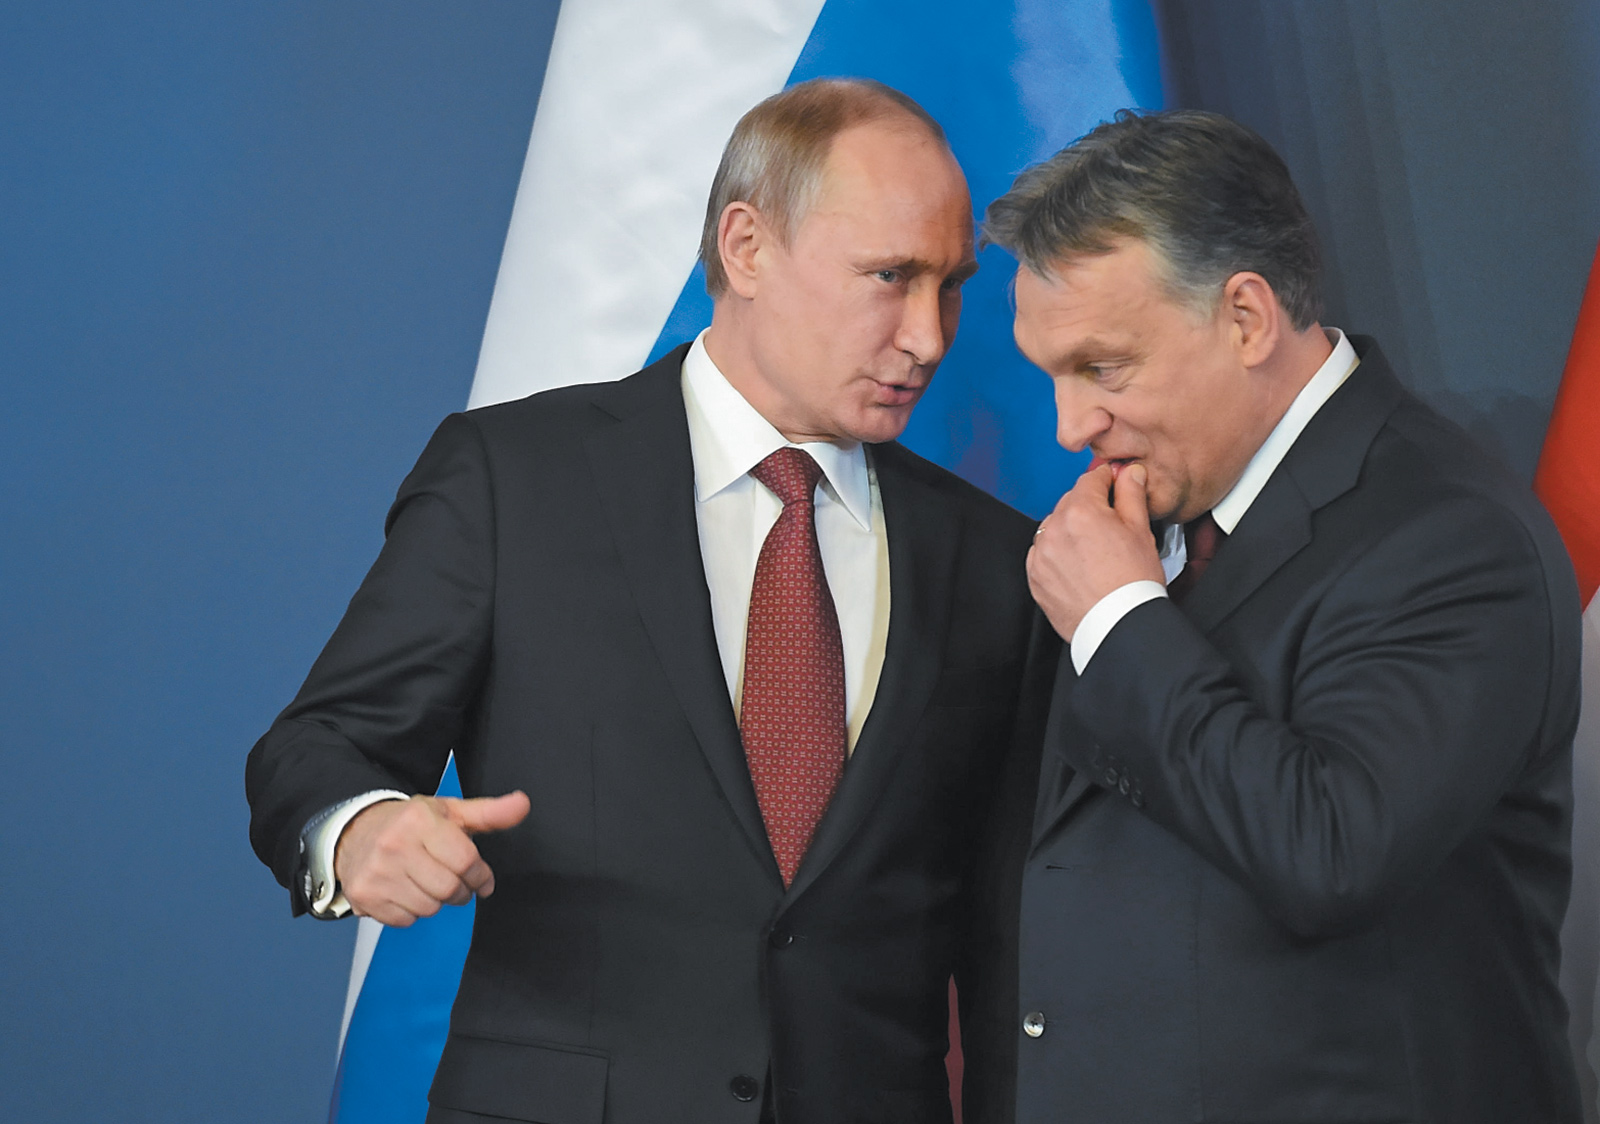 Vladimir Putin and Viktor Orbán at a press conference in Budapest, February 2015